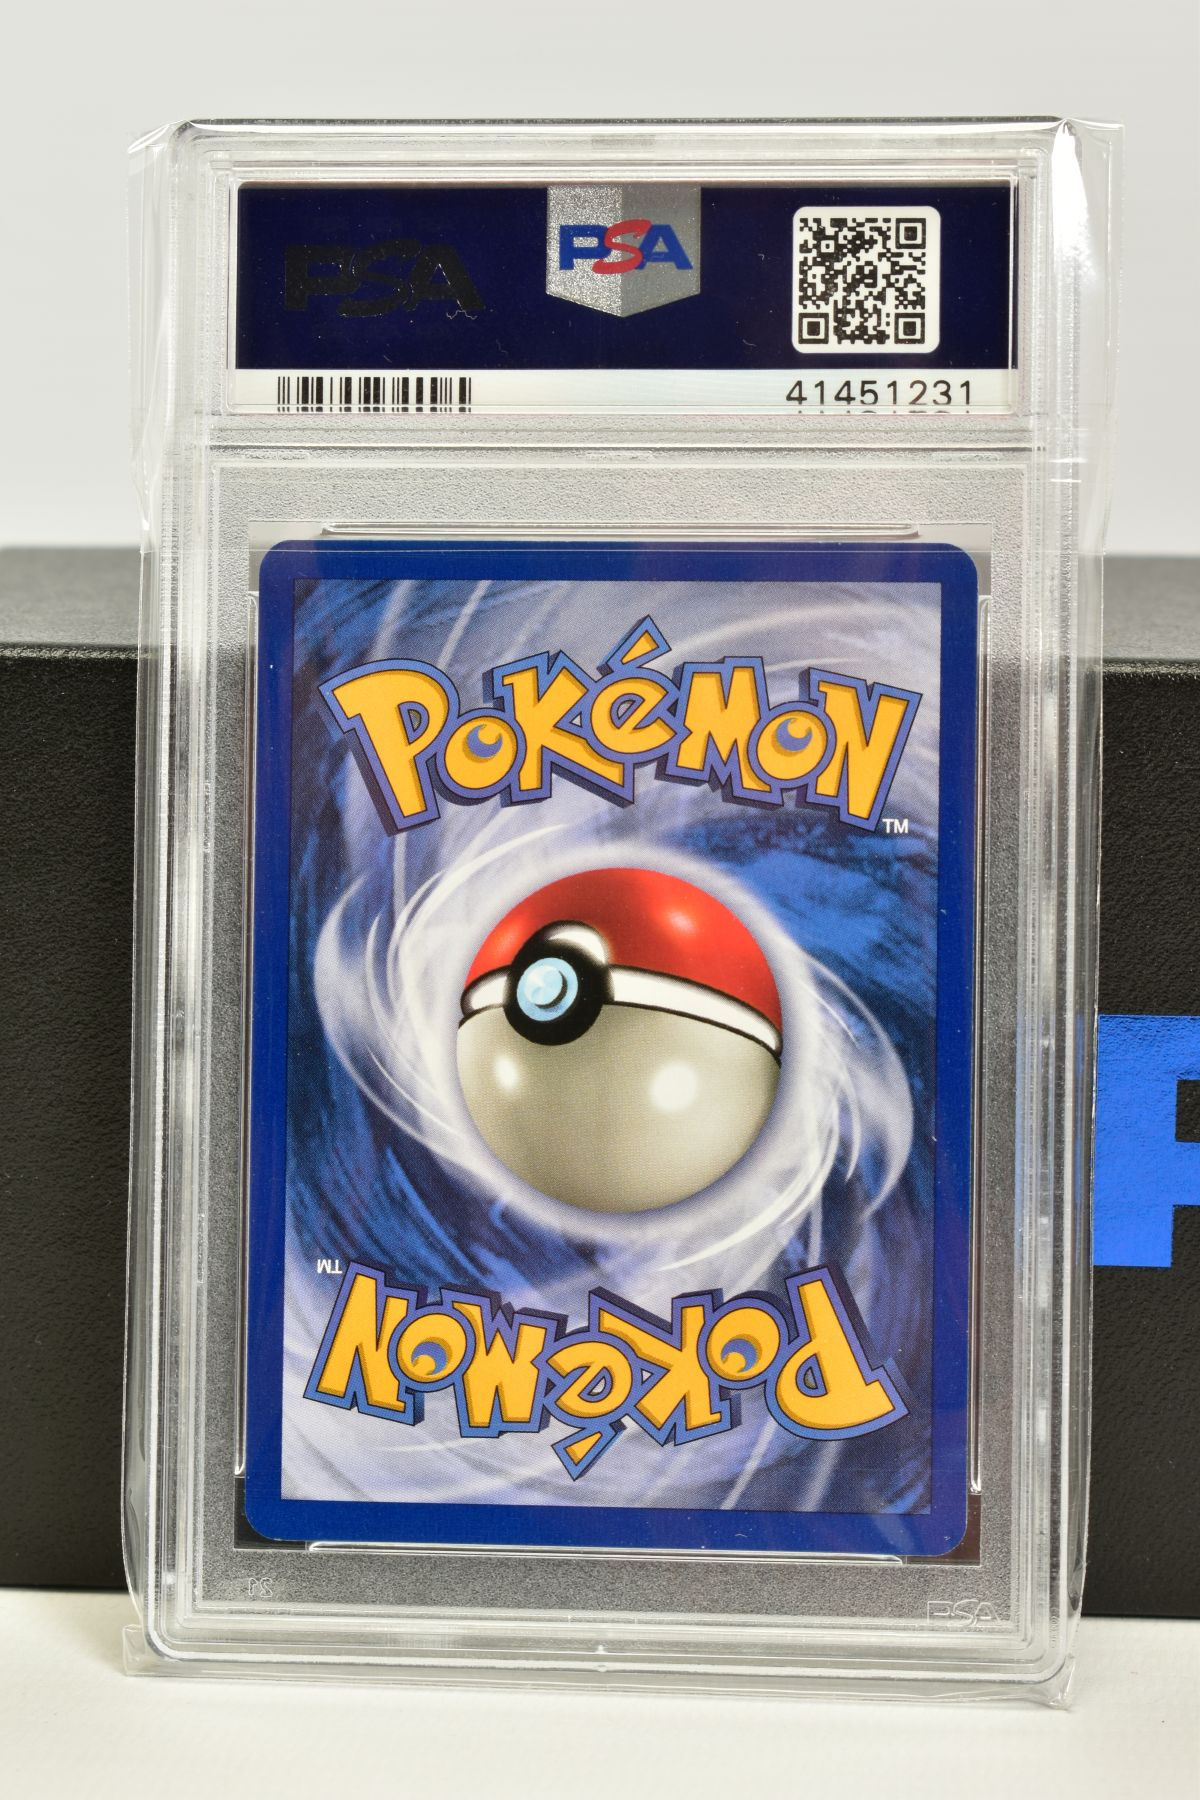 A PSA GRADED POKEMON 1ST EDITION FOSSIL SET ZAPDOS HOLO CARD, (15/62), graded GEM MINT 10 and sealed - Image 2 of 2